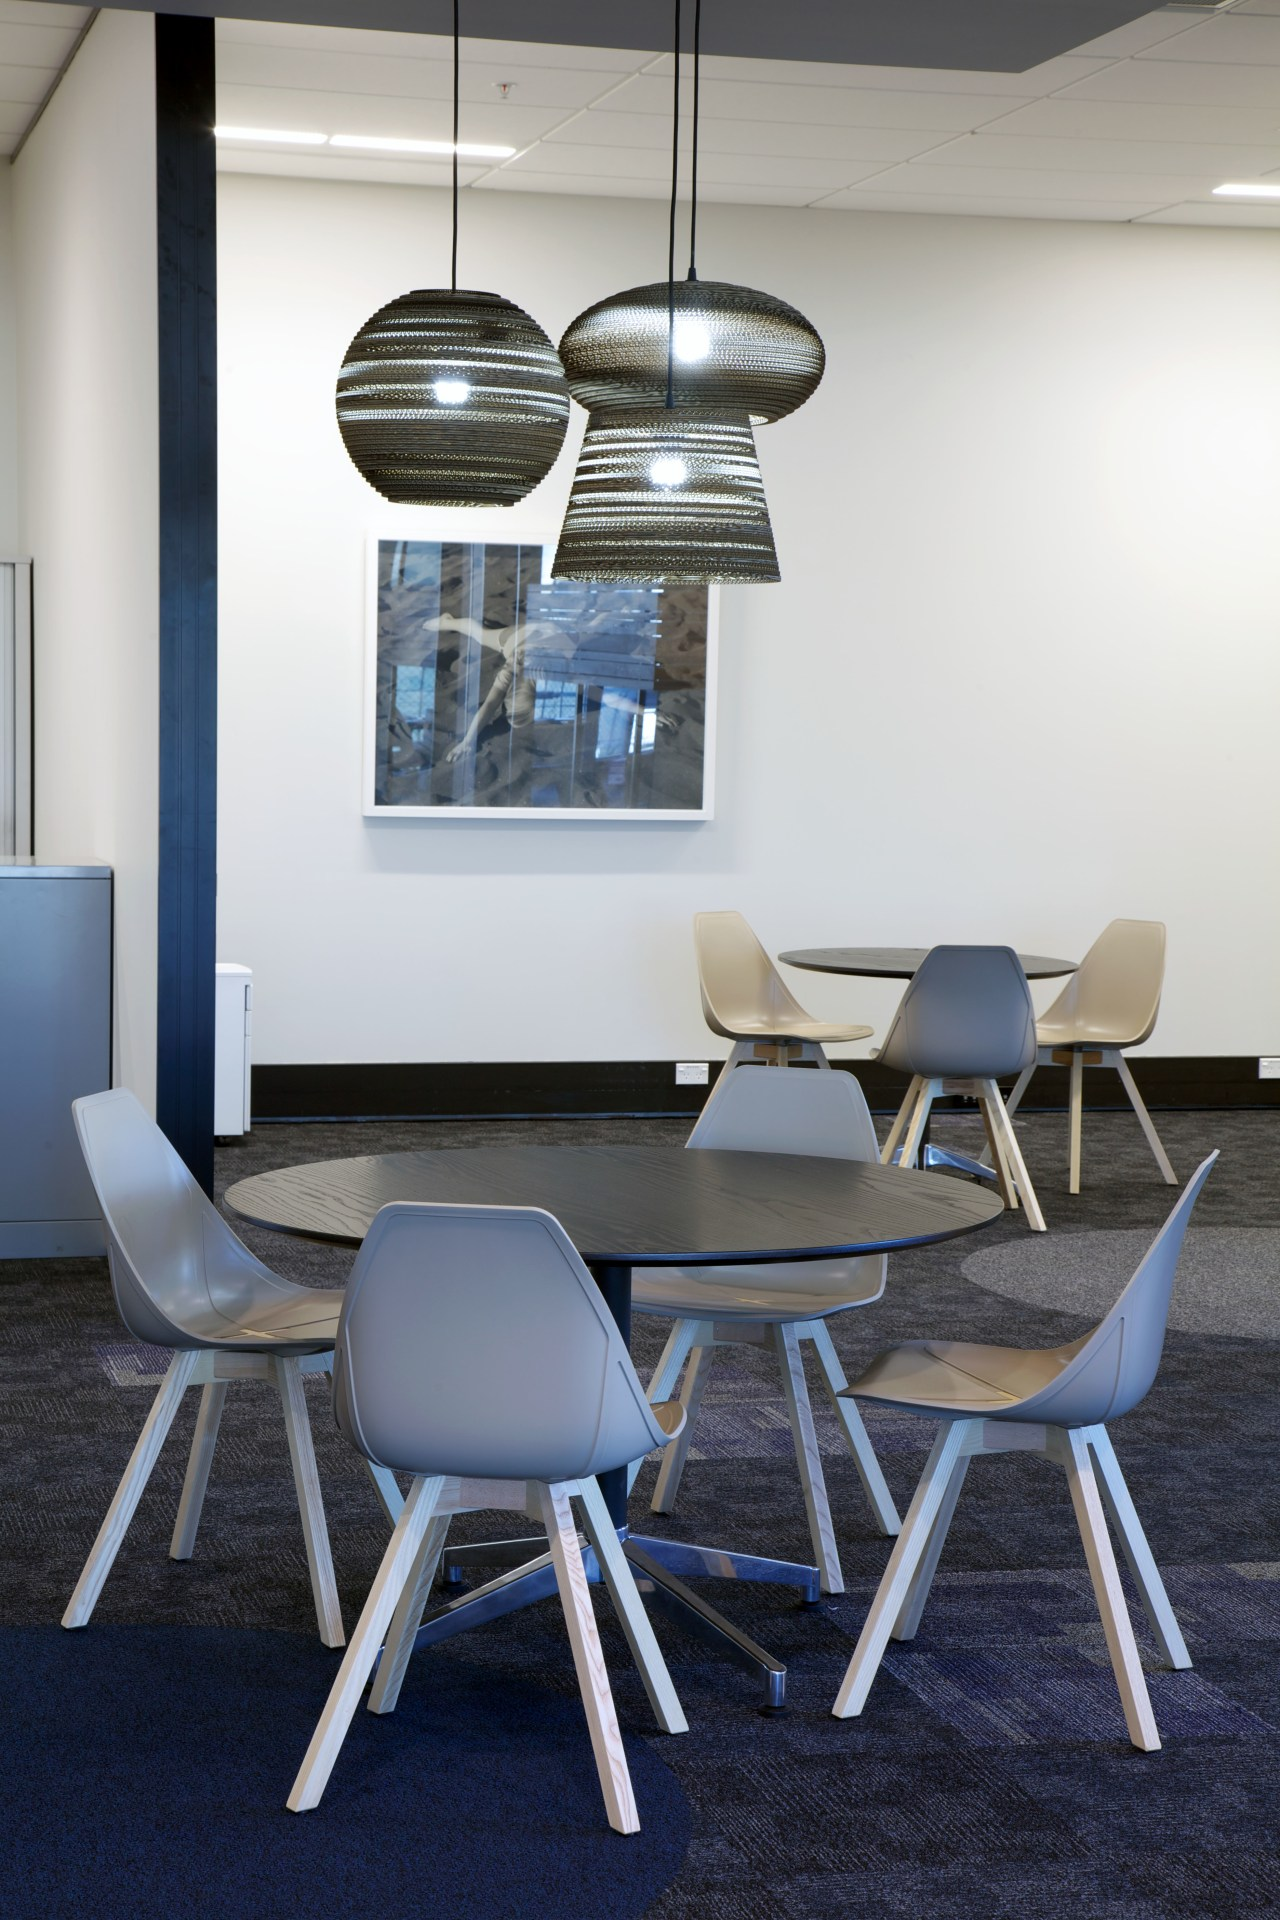 This commercial interior reflects a professional business with architecture, ceiling, chair, dining room, furniture, interior design, light fixture, office, product design, table, gray, white